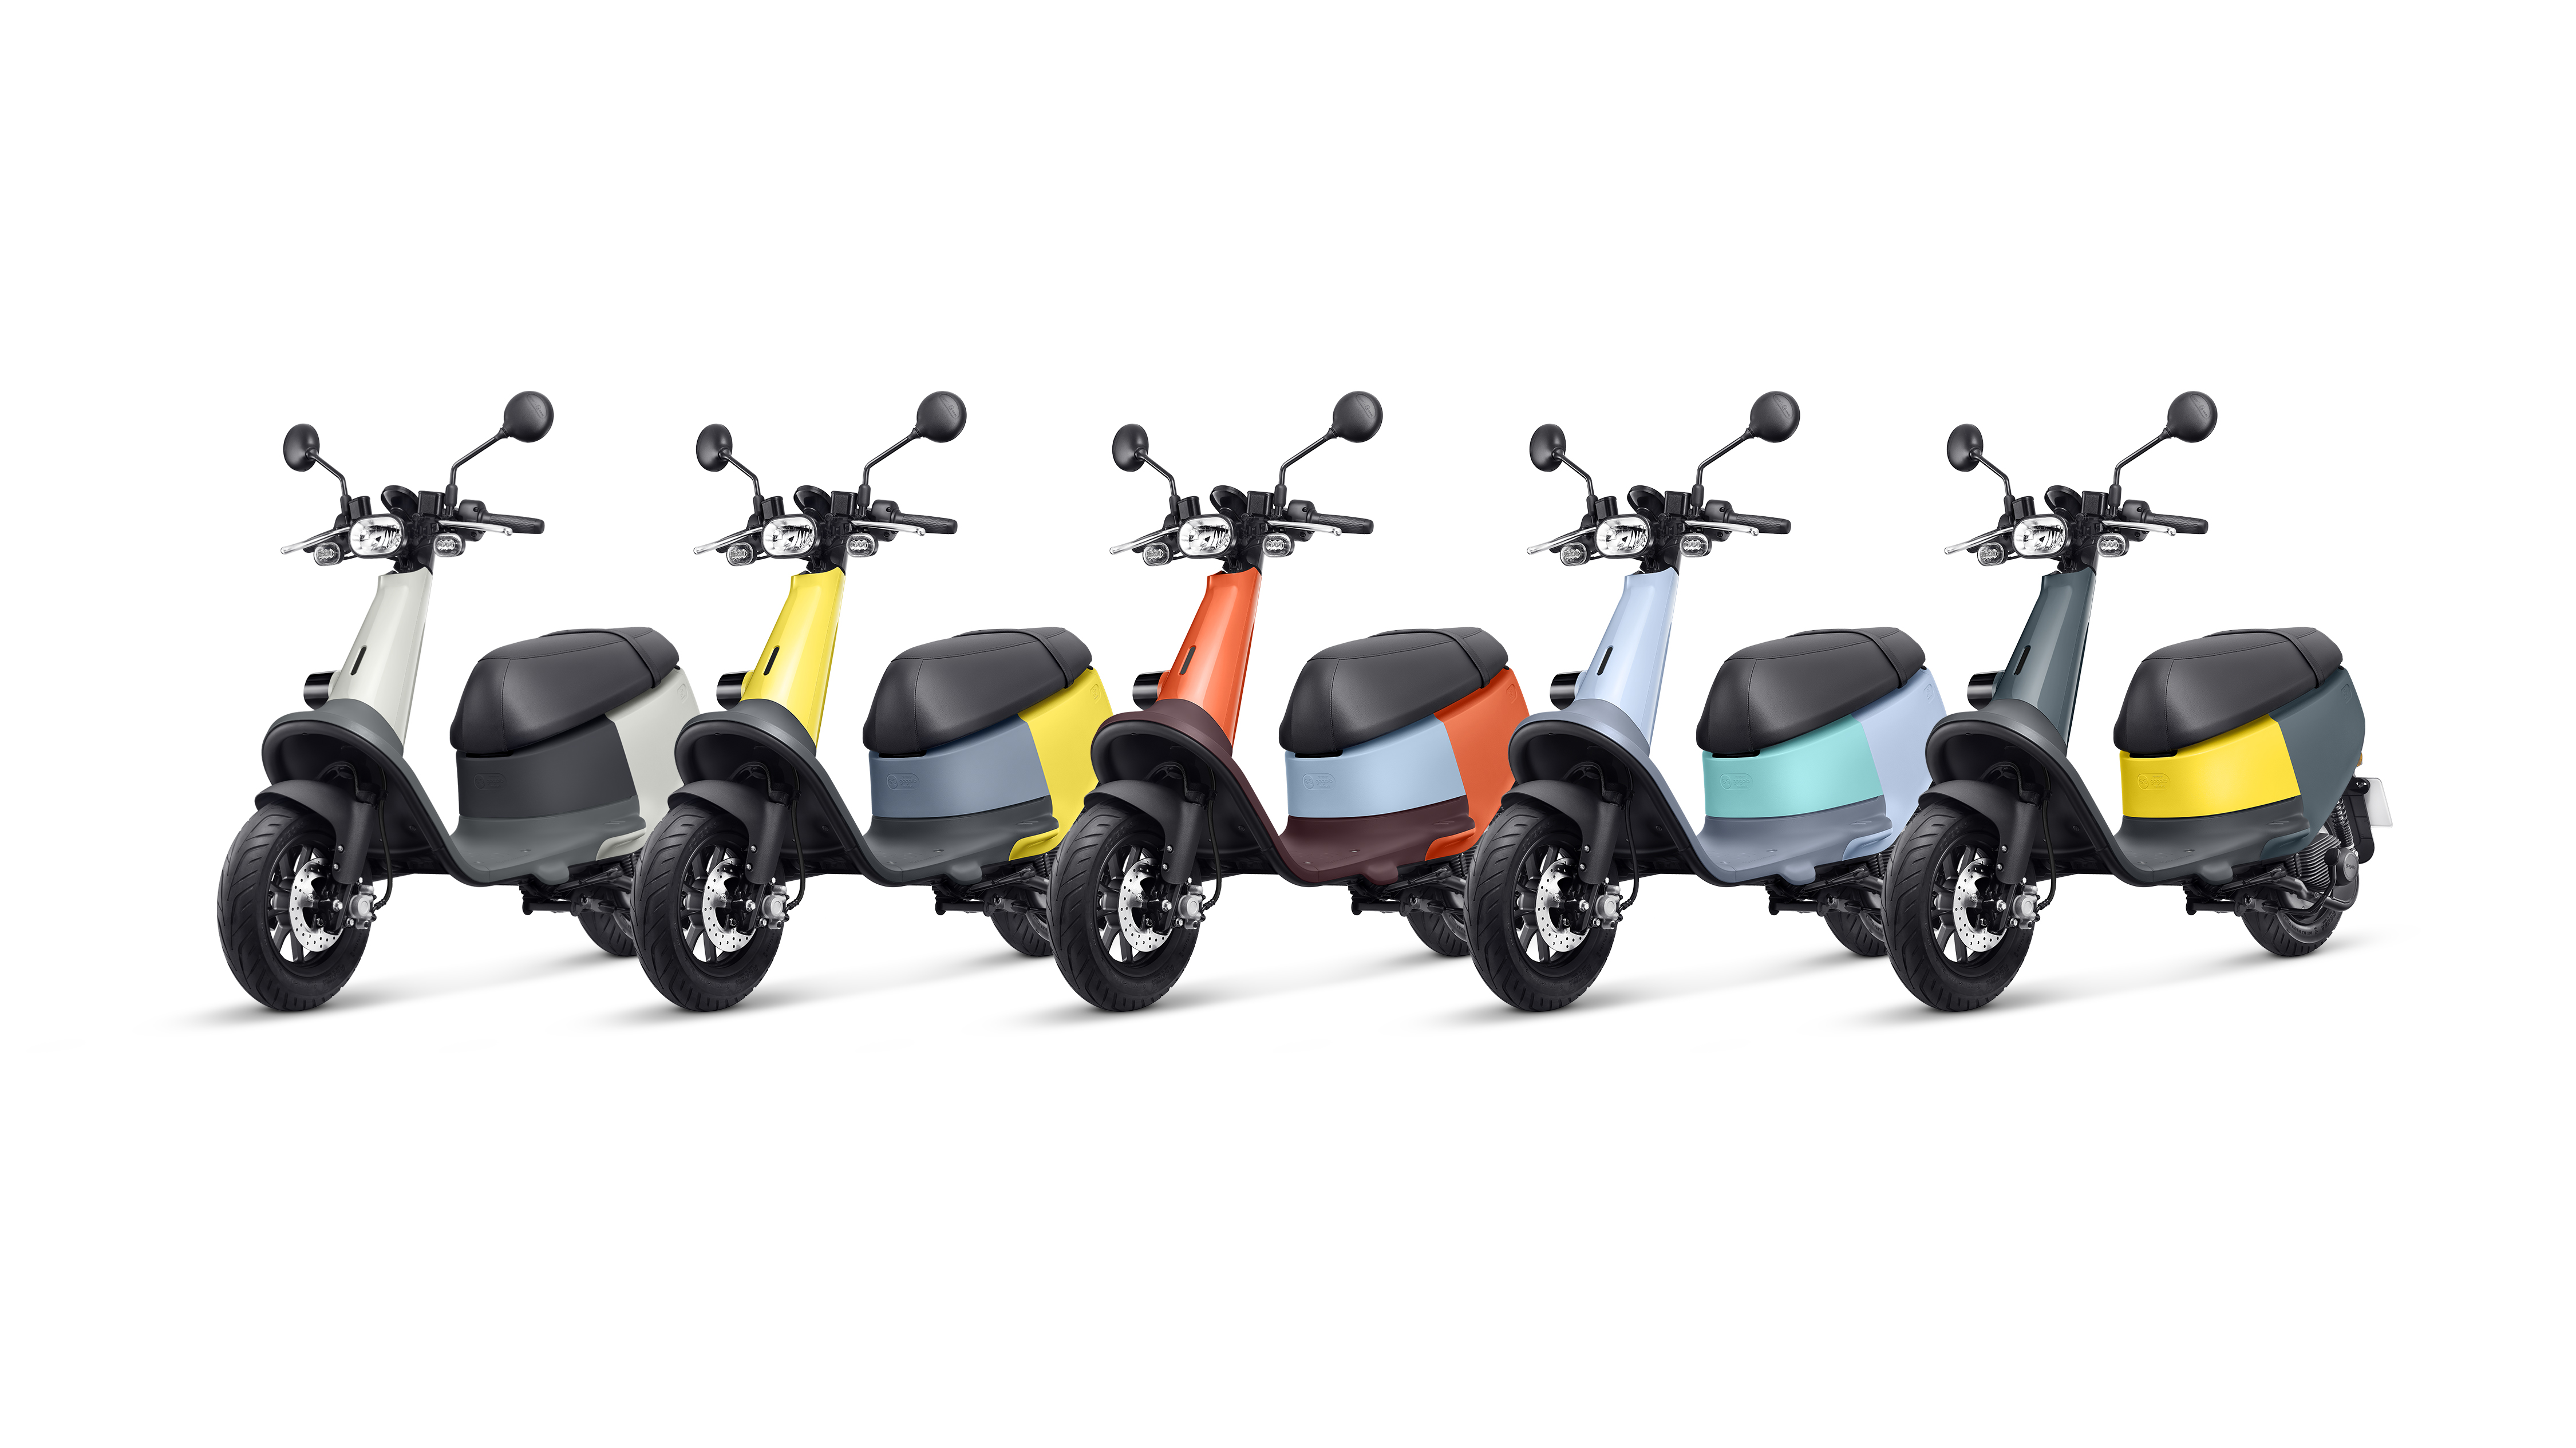 Gogoro launches its newest electric vehicle, a lightweight